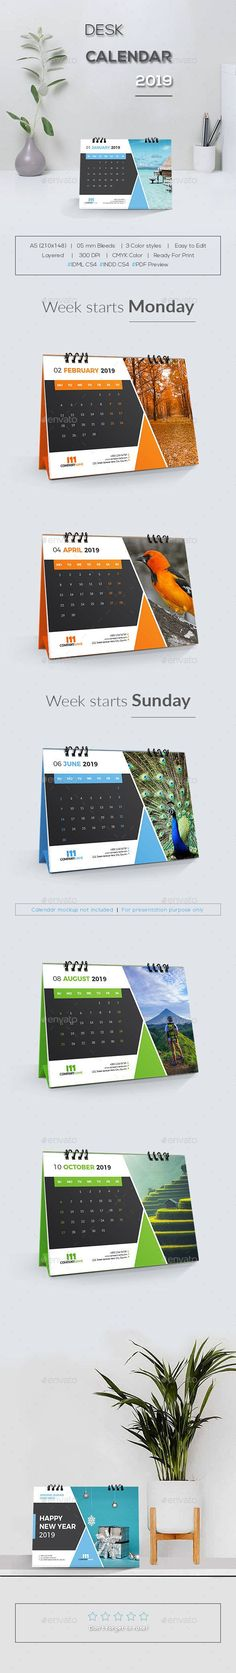 Buy Desk Calendar 2020 by MstArtwork on GraphicRiver. Desk Calendar 2020 12 Months + Cover Week starts Monday Week starts Sunday 3 Color Styles Free Fonts Used Size : (. Office Calendar, Calendar 2020, Desk Calendars, Calendar 2019 Template, Graphic Tees, Graphic Design, Anime Artwork, Beautiful Pictures, Blue Art